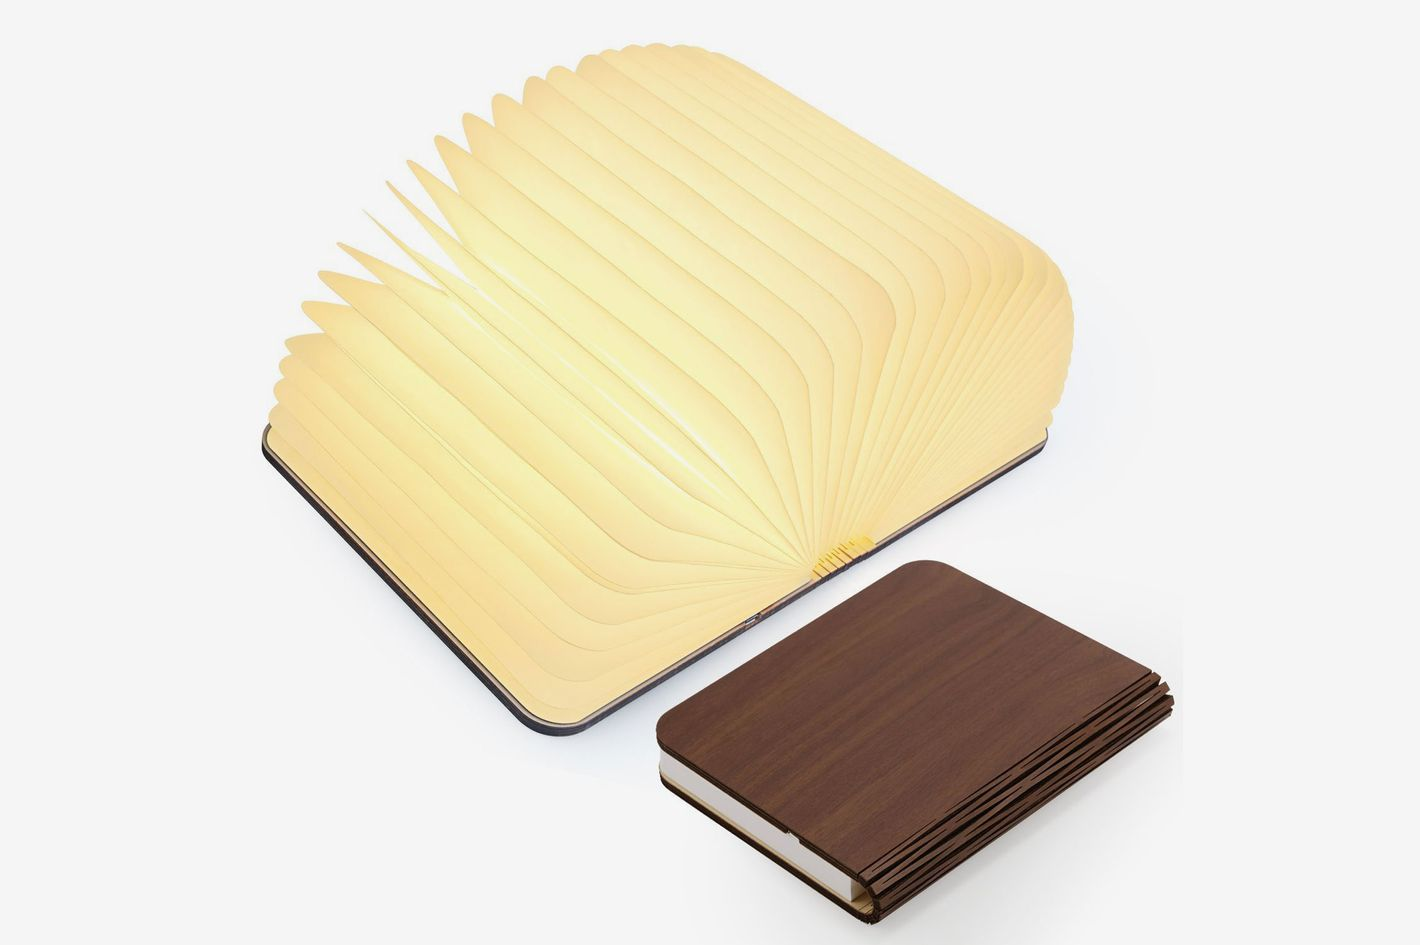 Magicfly Wooden Folding Book Light